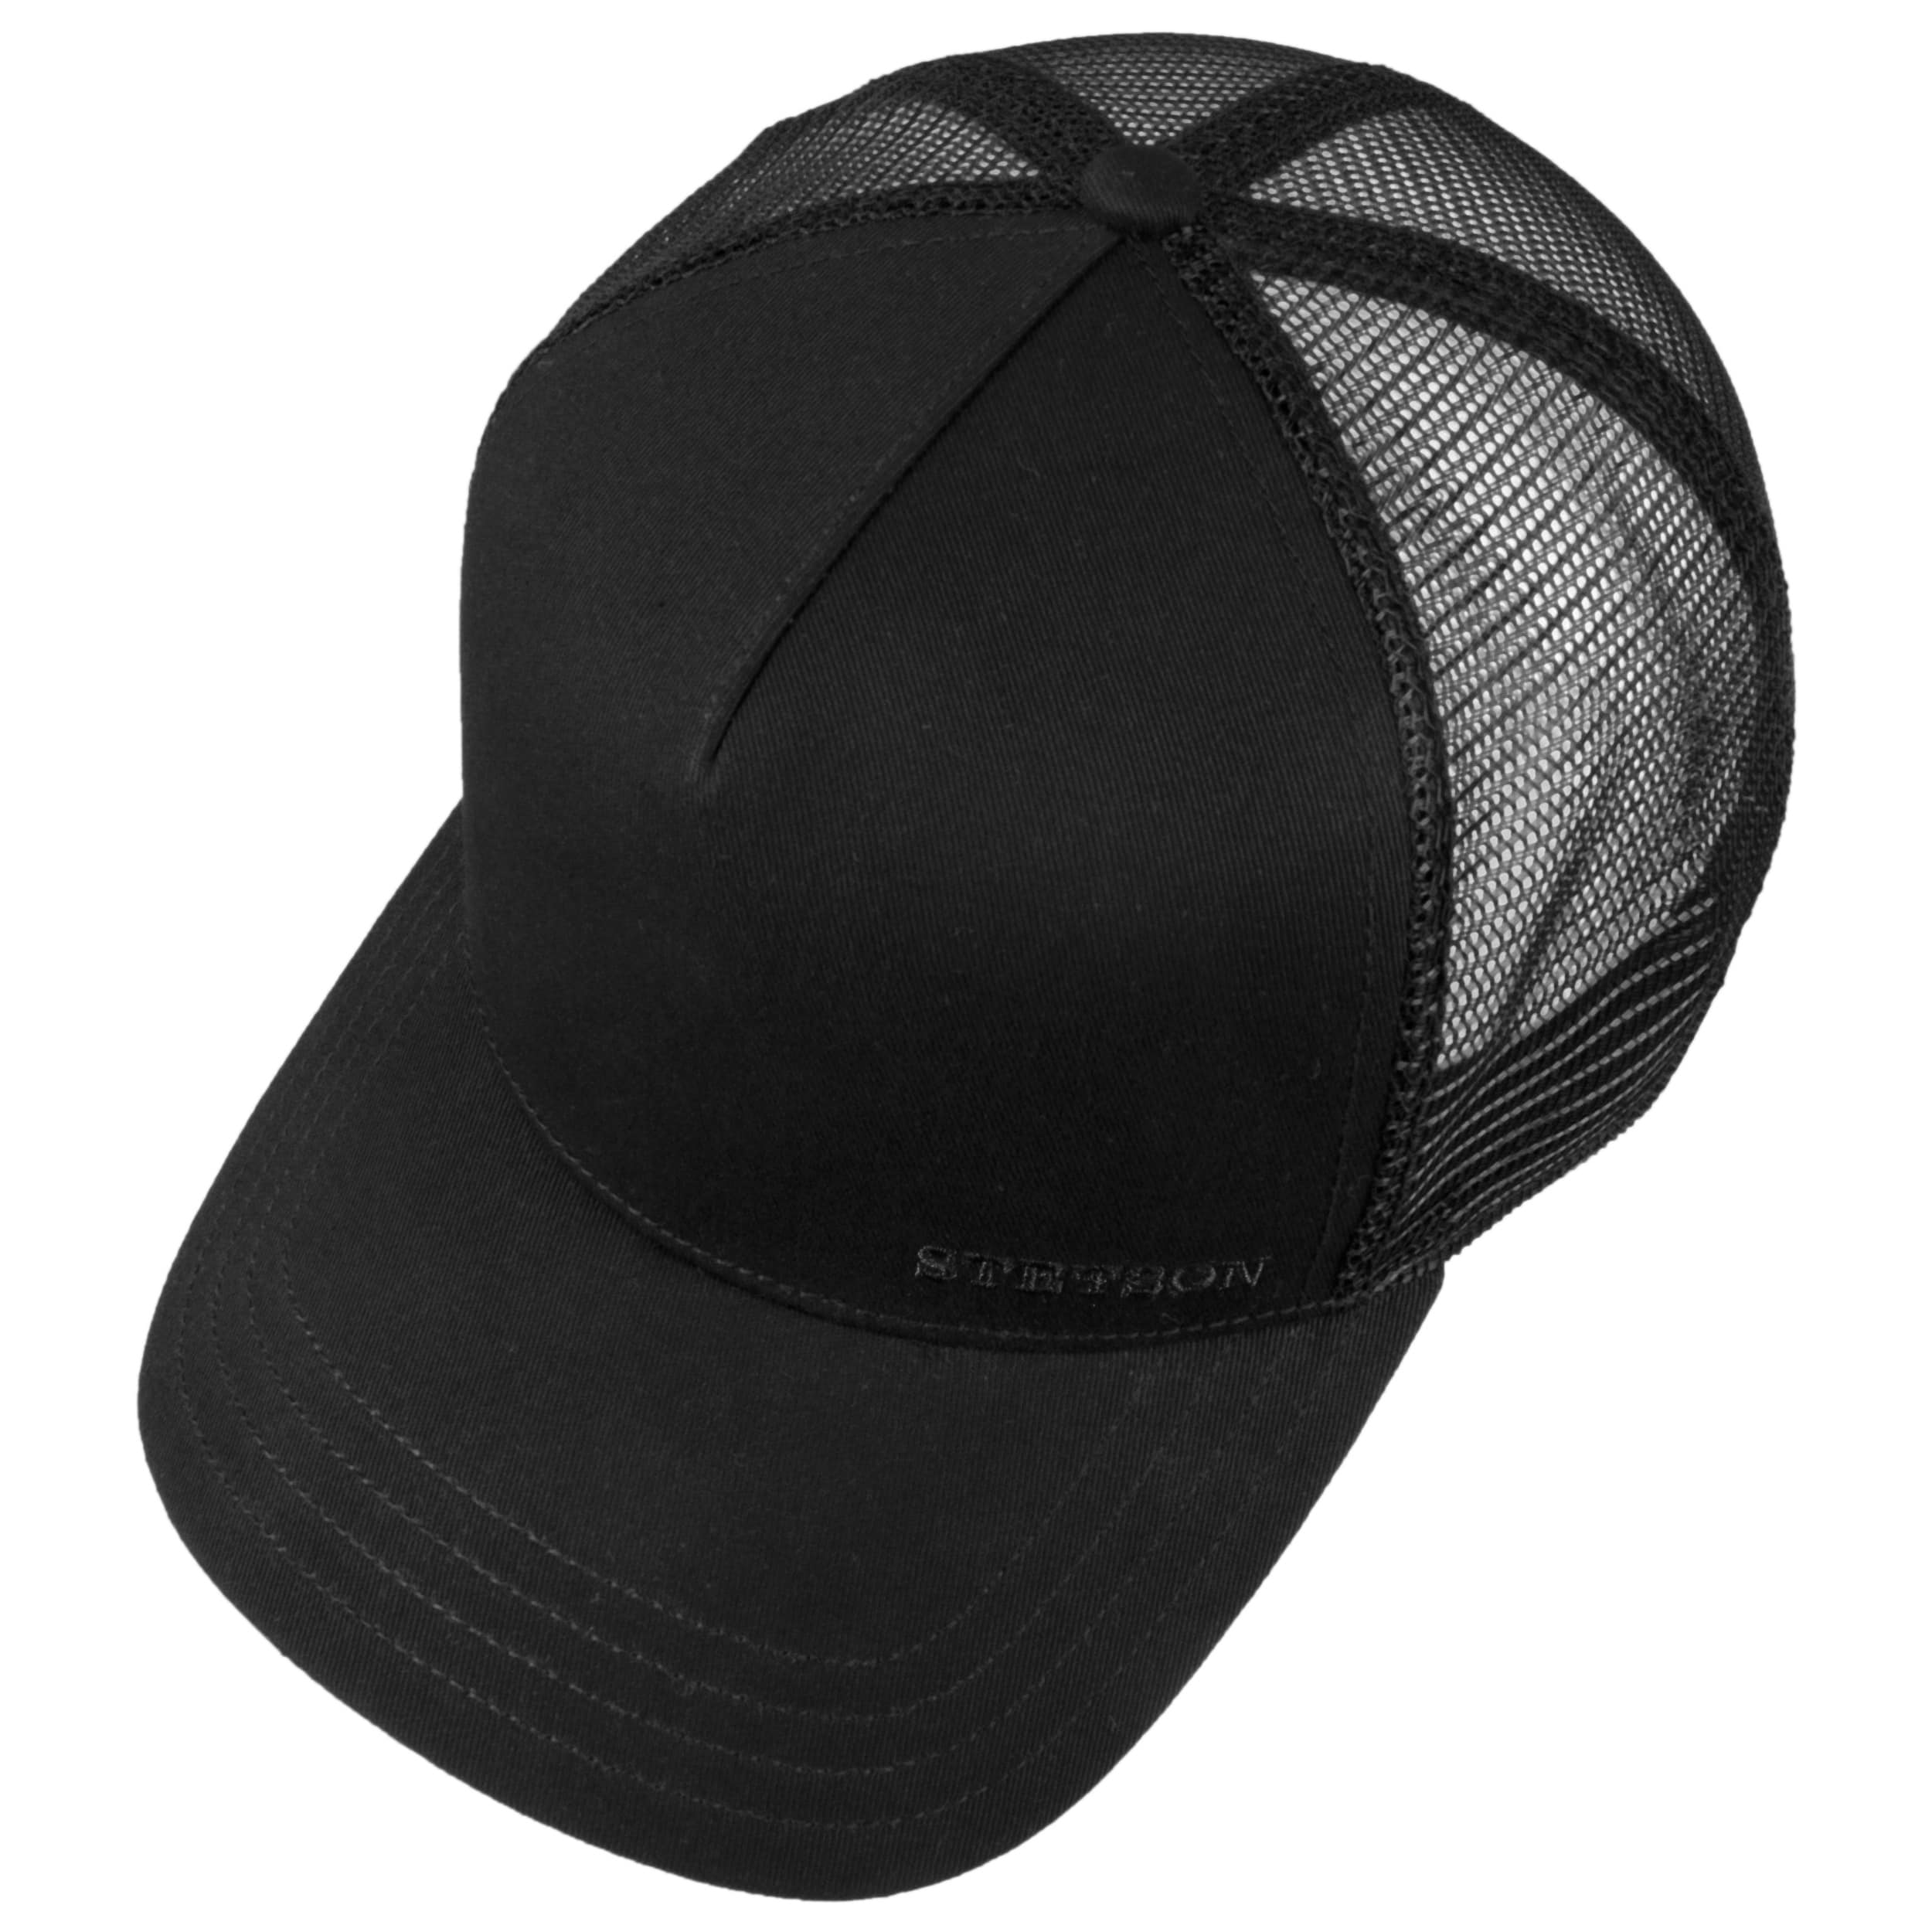 Classic Cotton Trucker Cap by Stetson - black 1 ... dee683d2827